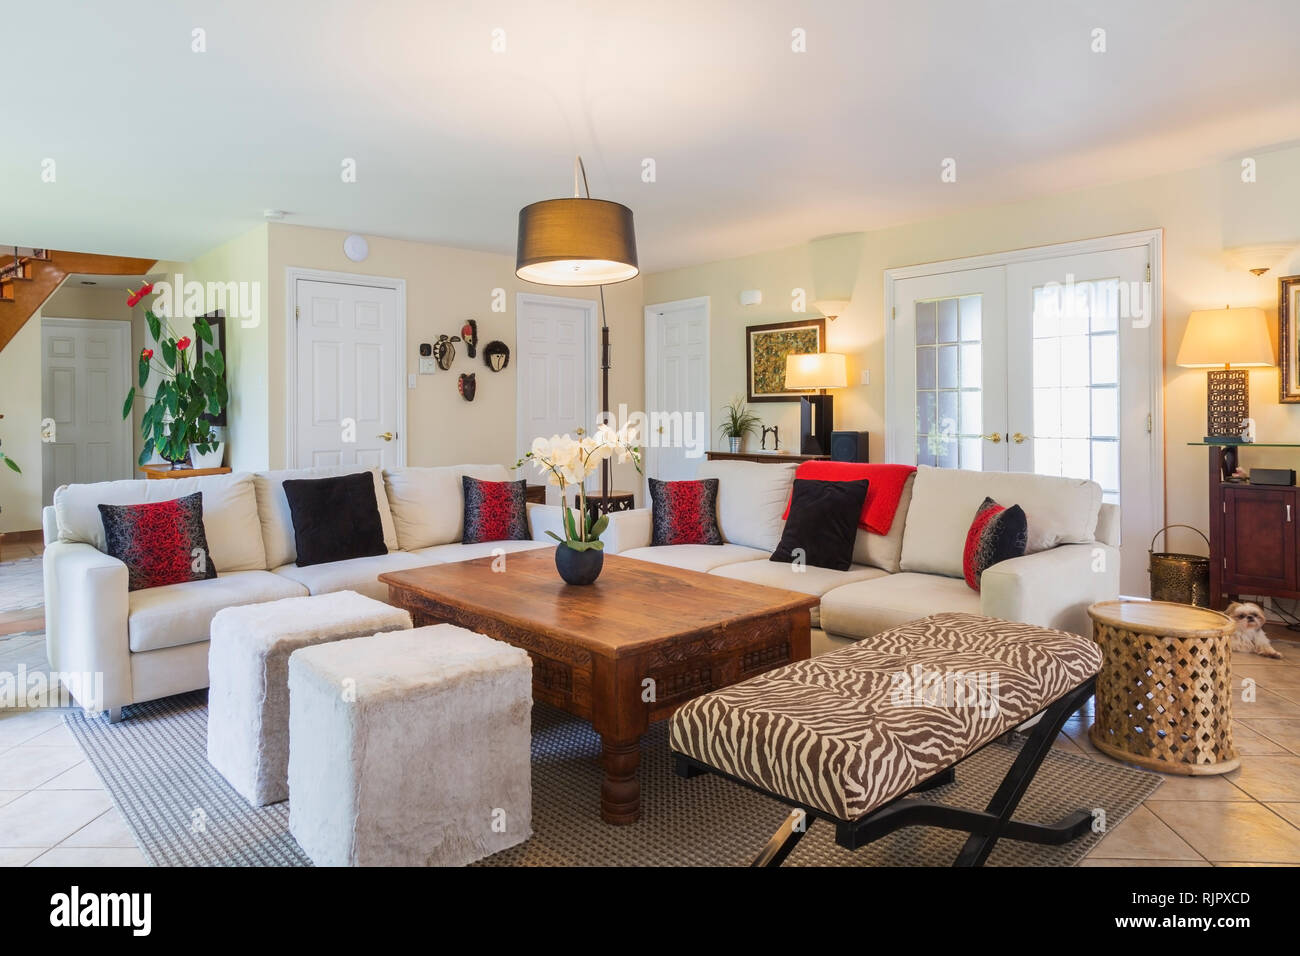 Beige Upholstered Sofas With Colourful Cushions Wooden Coffee Table And Zebra Motif Ottoman In Living Room Stock Photo Alamy